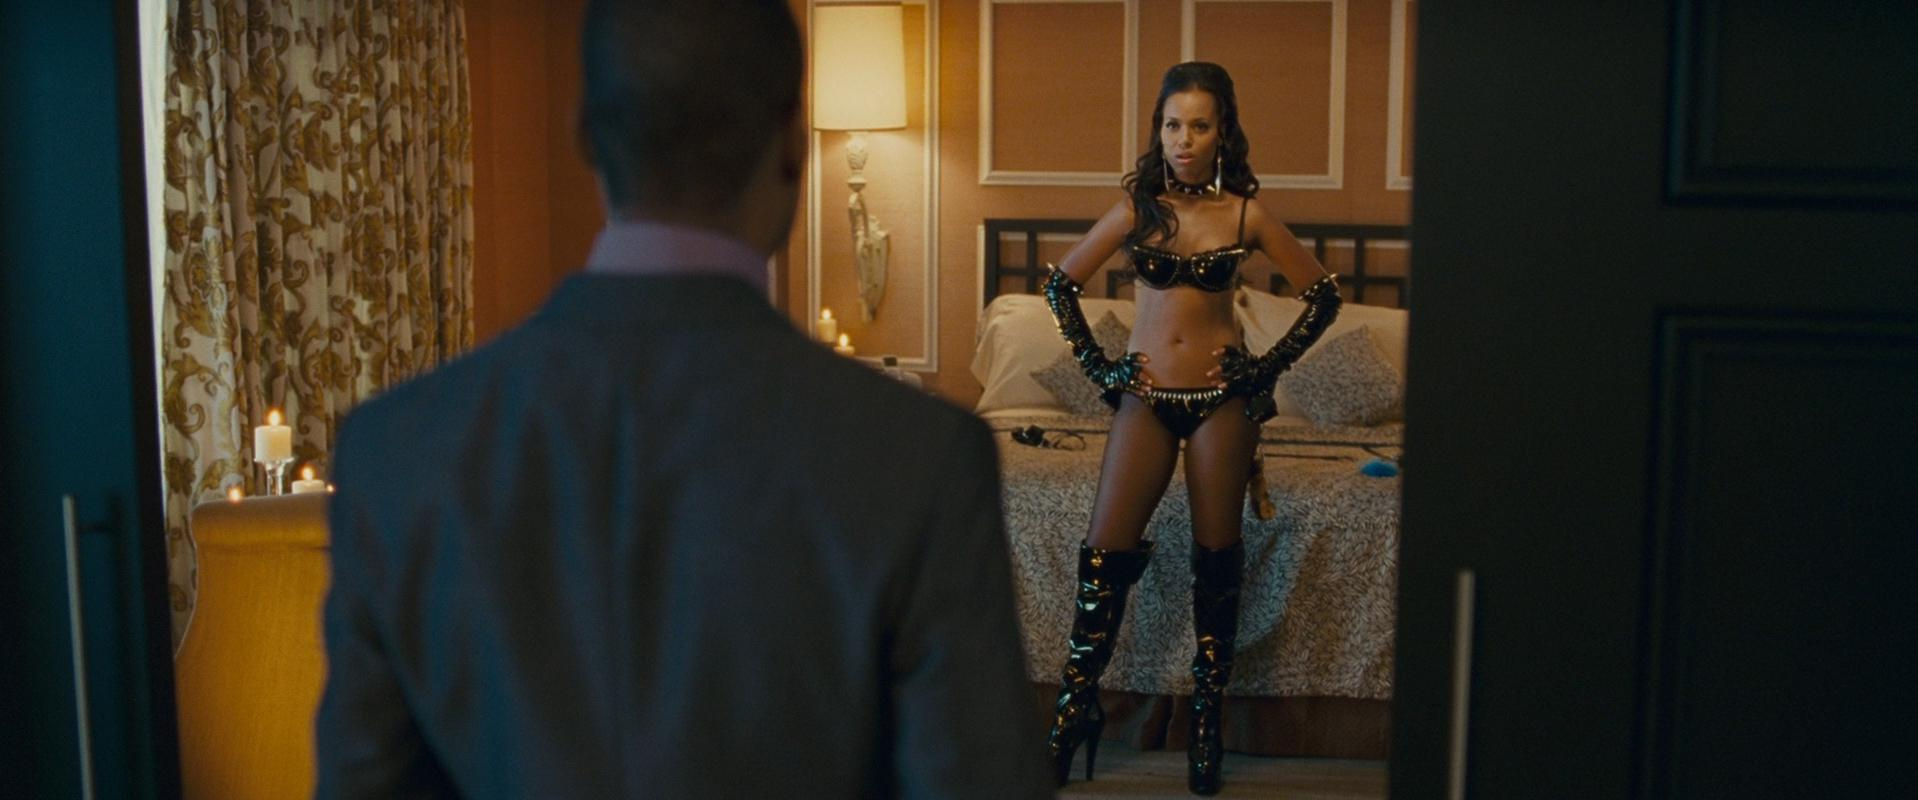 Kerry Washington sexy - A Thousand Words (2012)